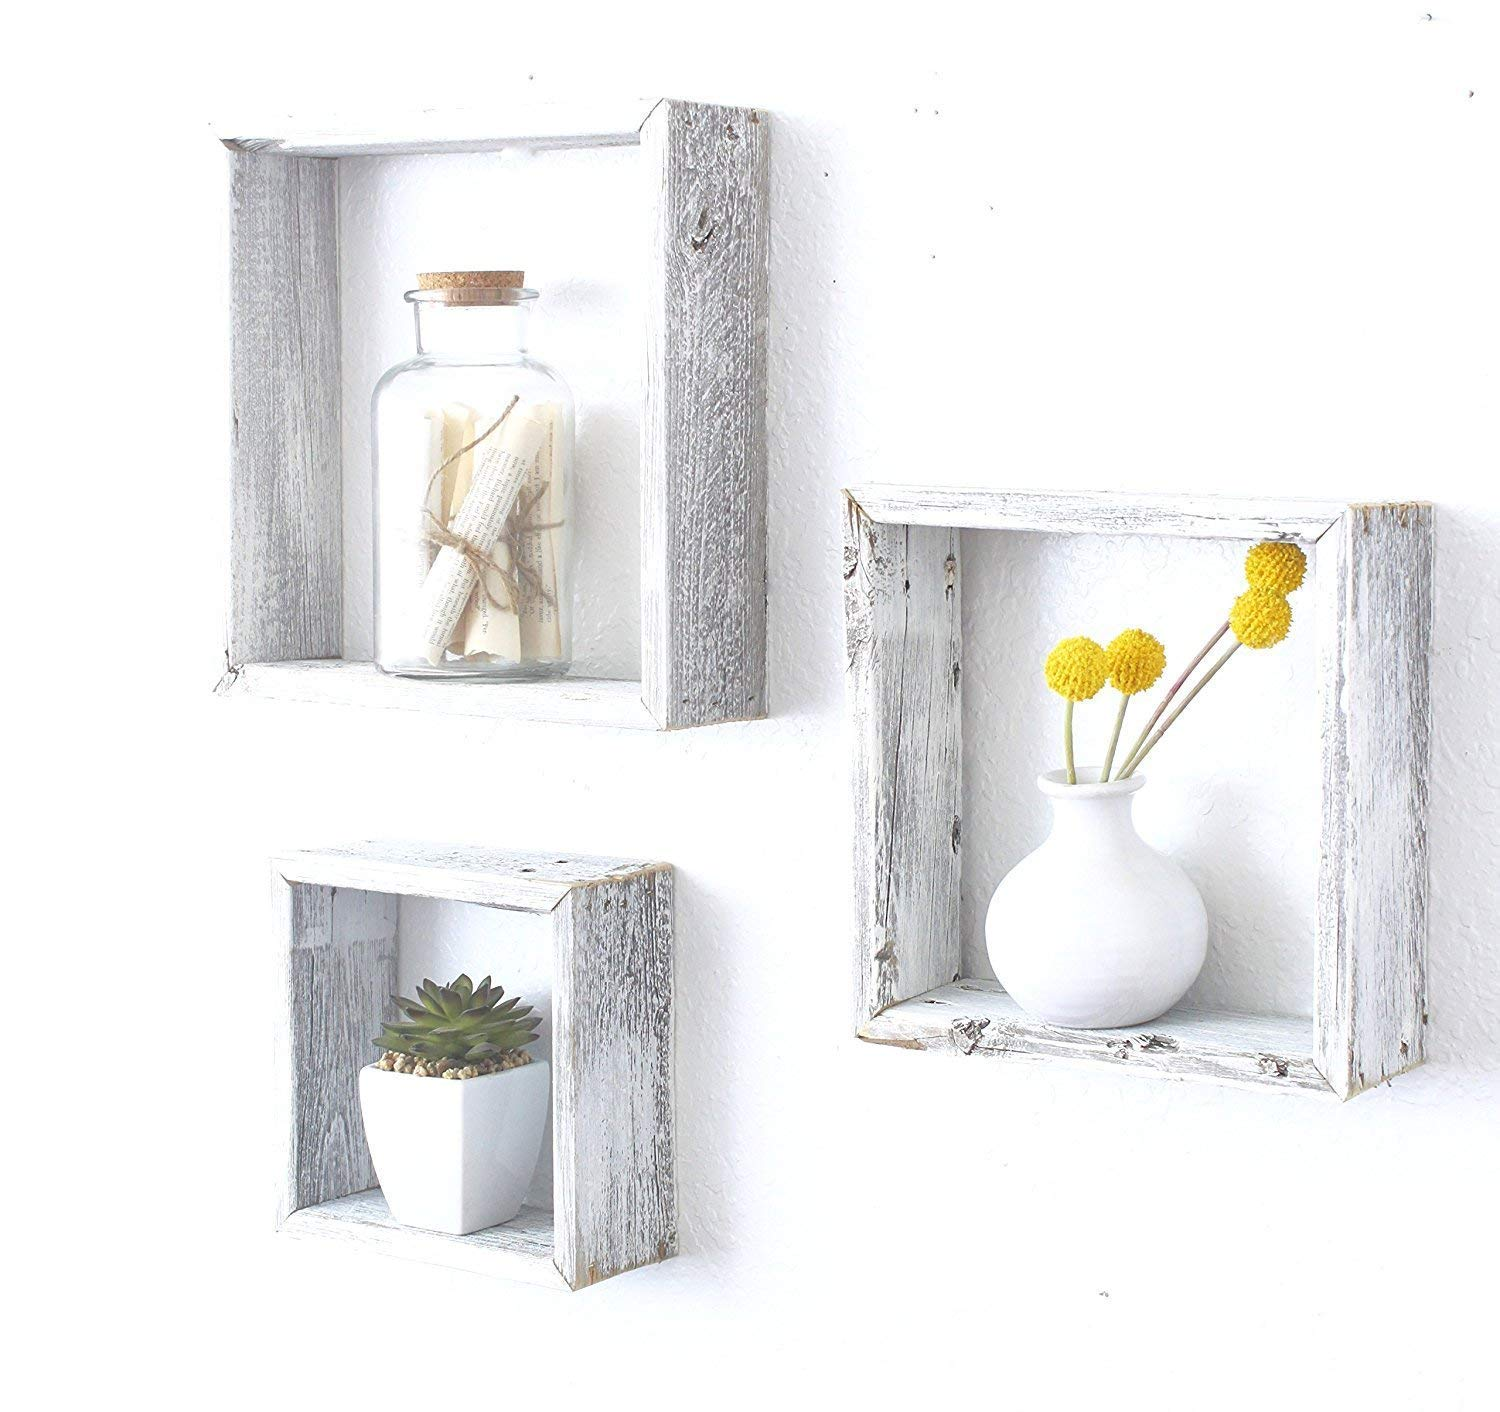 BarnwoodUSA Whitewash Rustic Shelves, Square Floating Wood Shadowbox, Home Decor, Set of 3 by BarnwoodUSA